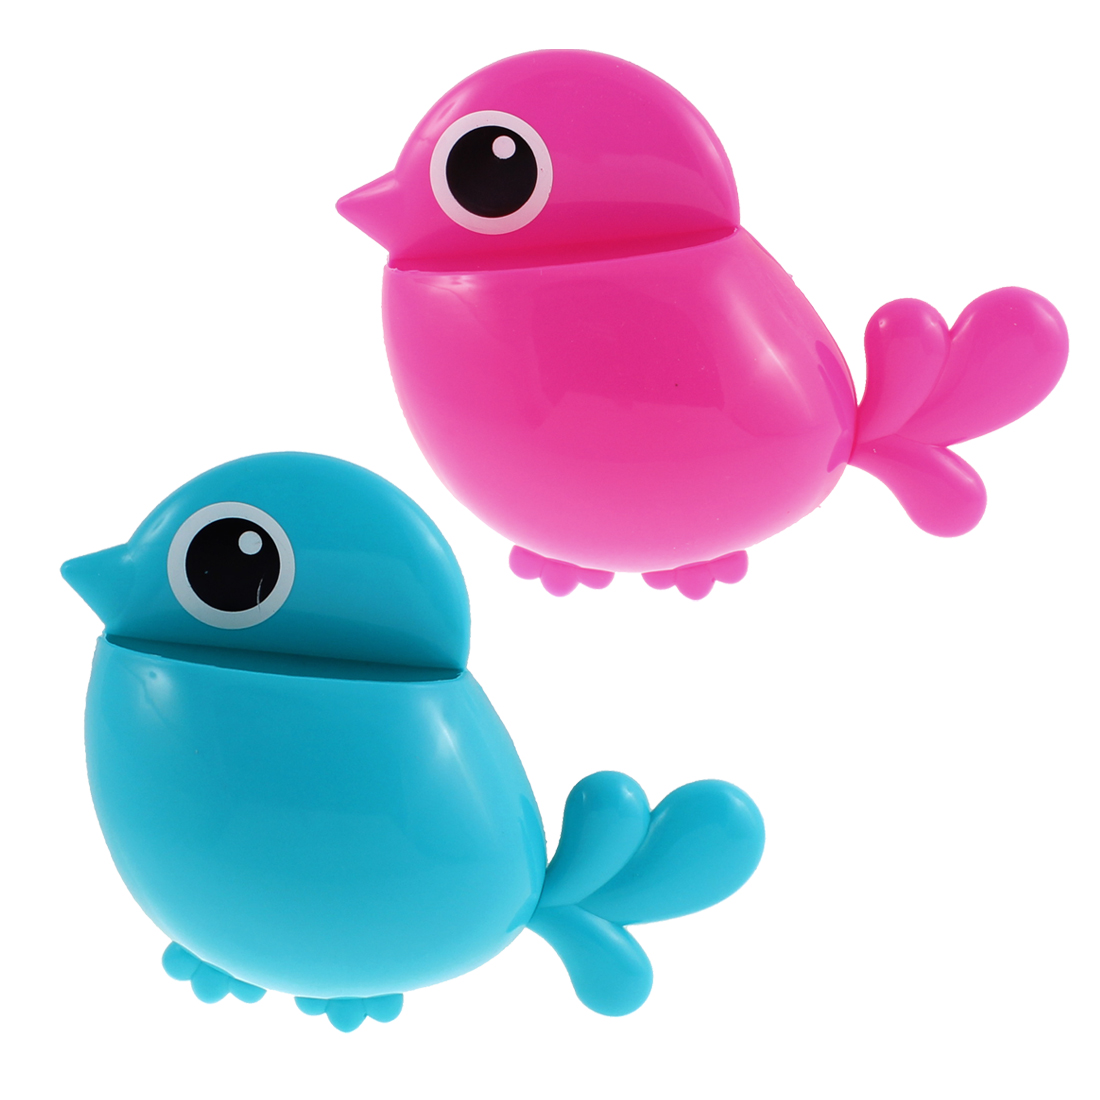 Home Plastic Bird Shape Toothbrush Toothpaste Holder Fuchsia Blue 2pcs